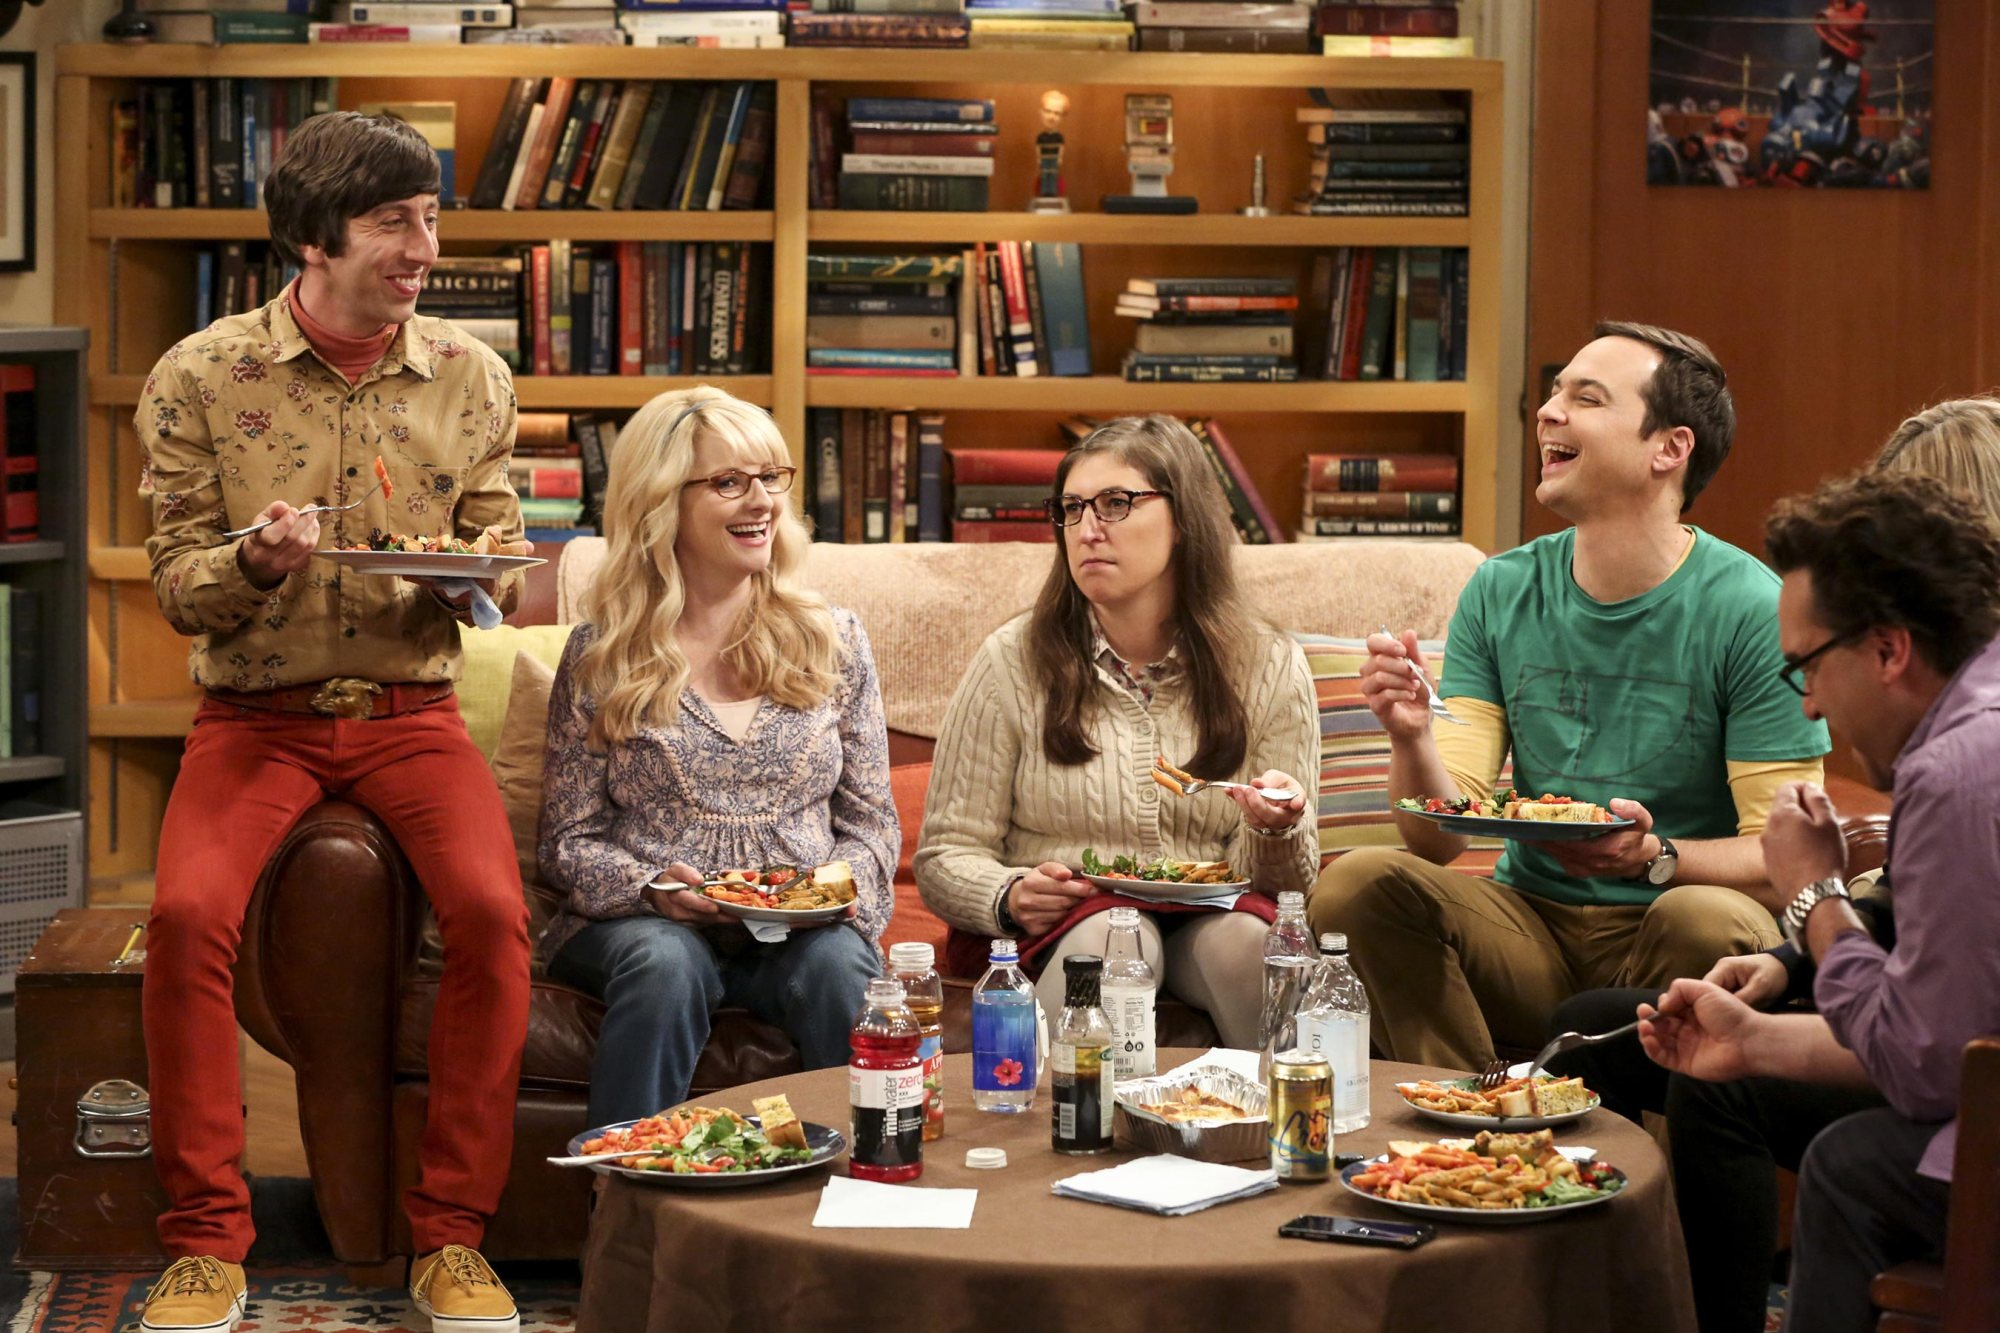 a report on the big bang theory Big bang theory cast take pay cut to help mayim bialik, melissa rauch get raises: report.